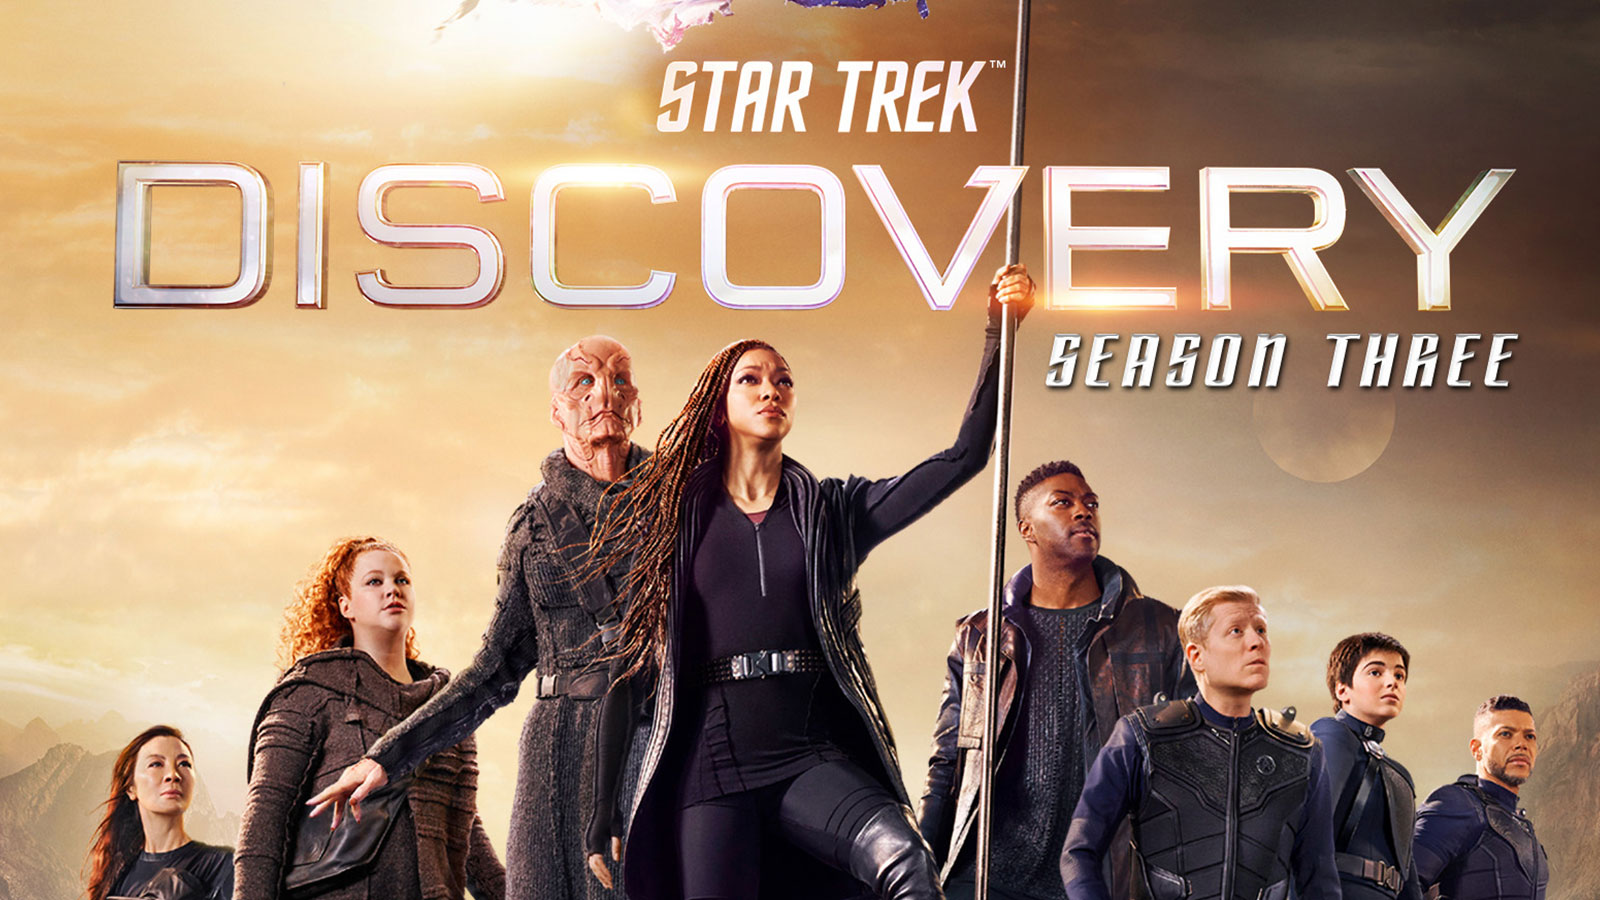 Star Trek: Discovery Season 3 Blu-Ray Review: An Exceptional Release That Could've Been Even Better